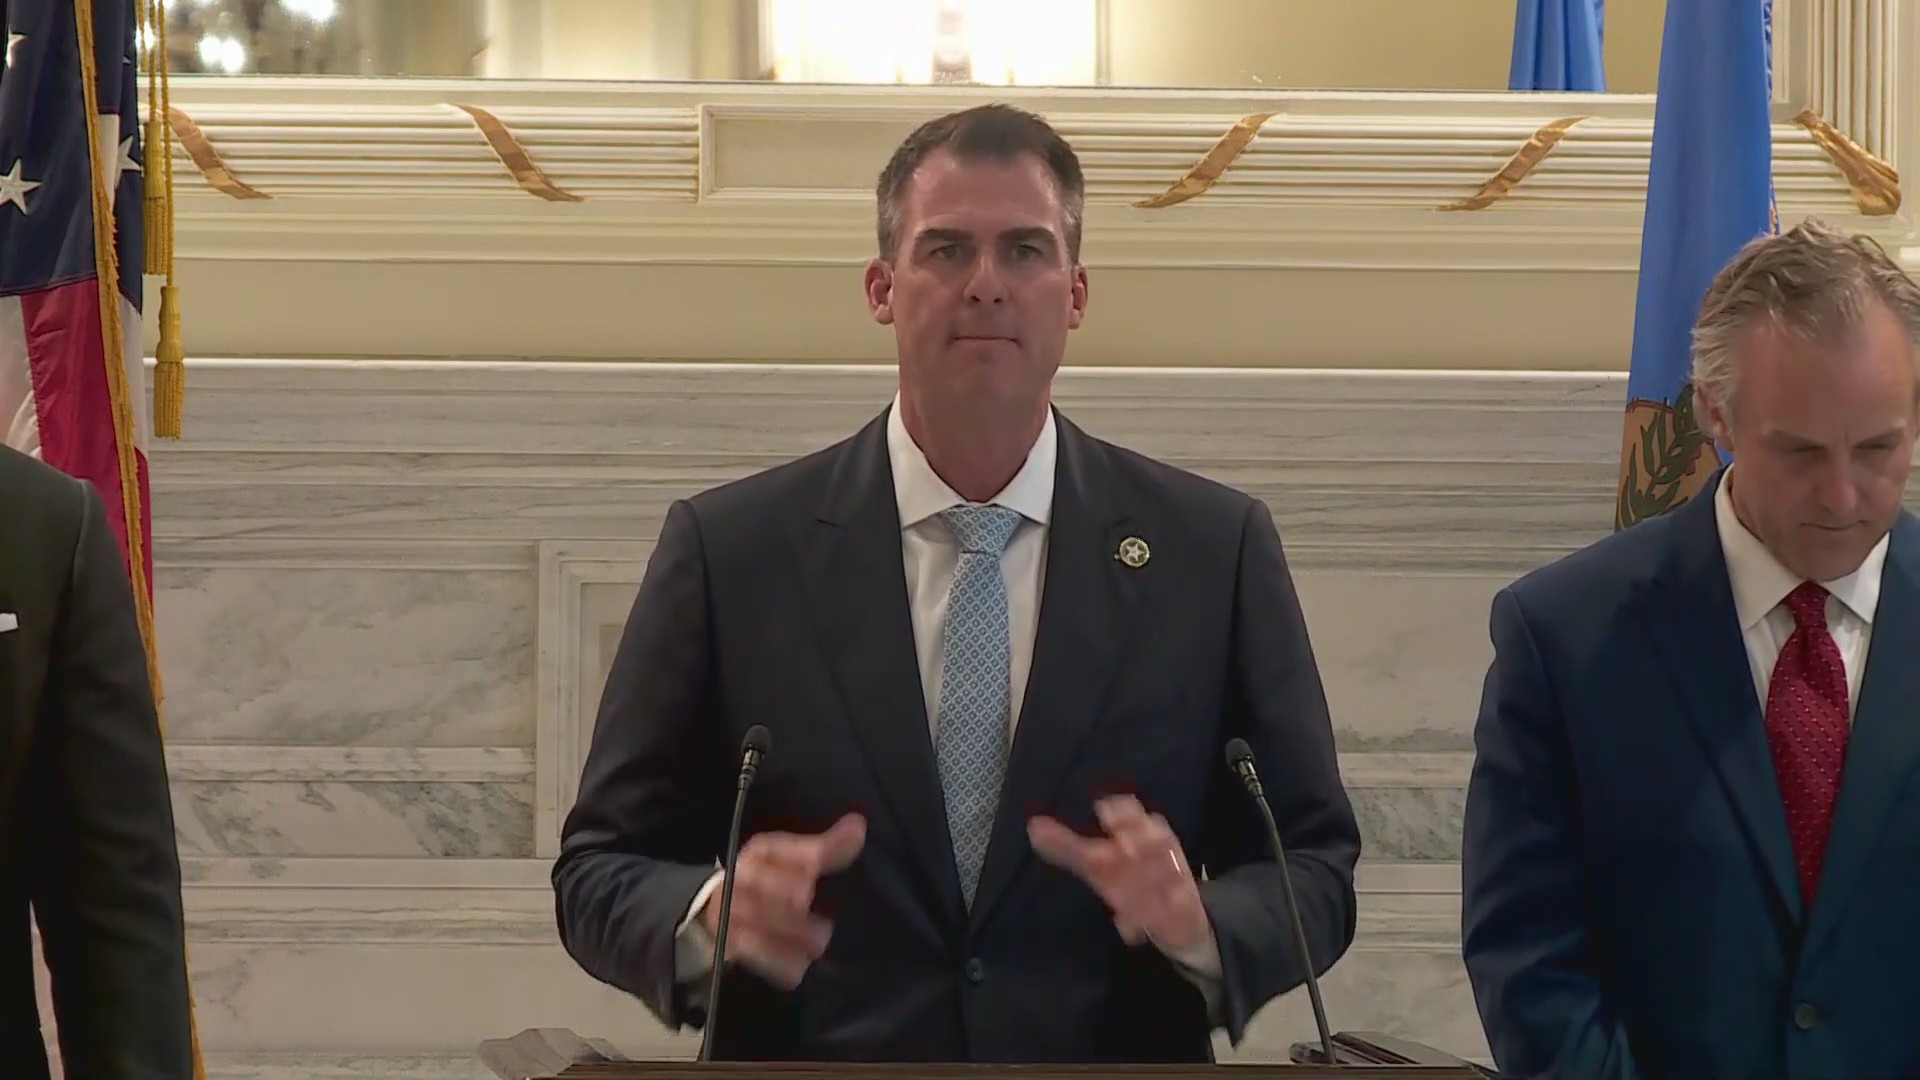 Image of Oklahoma governor Kevin Stitt